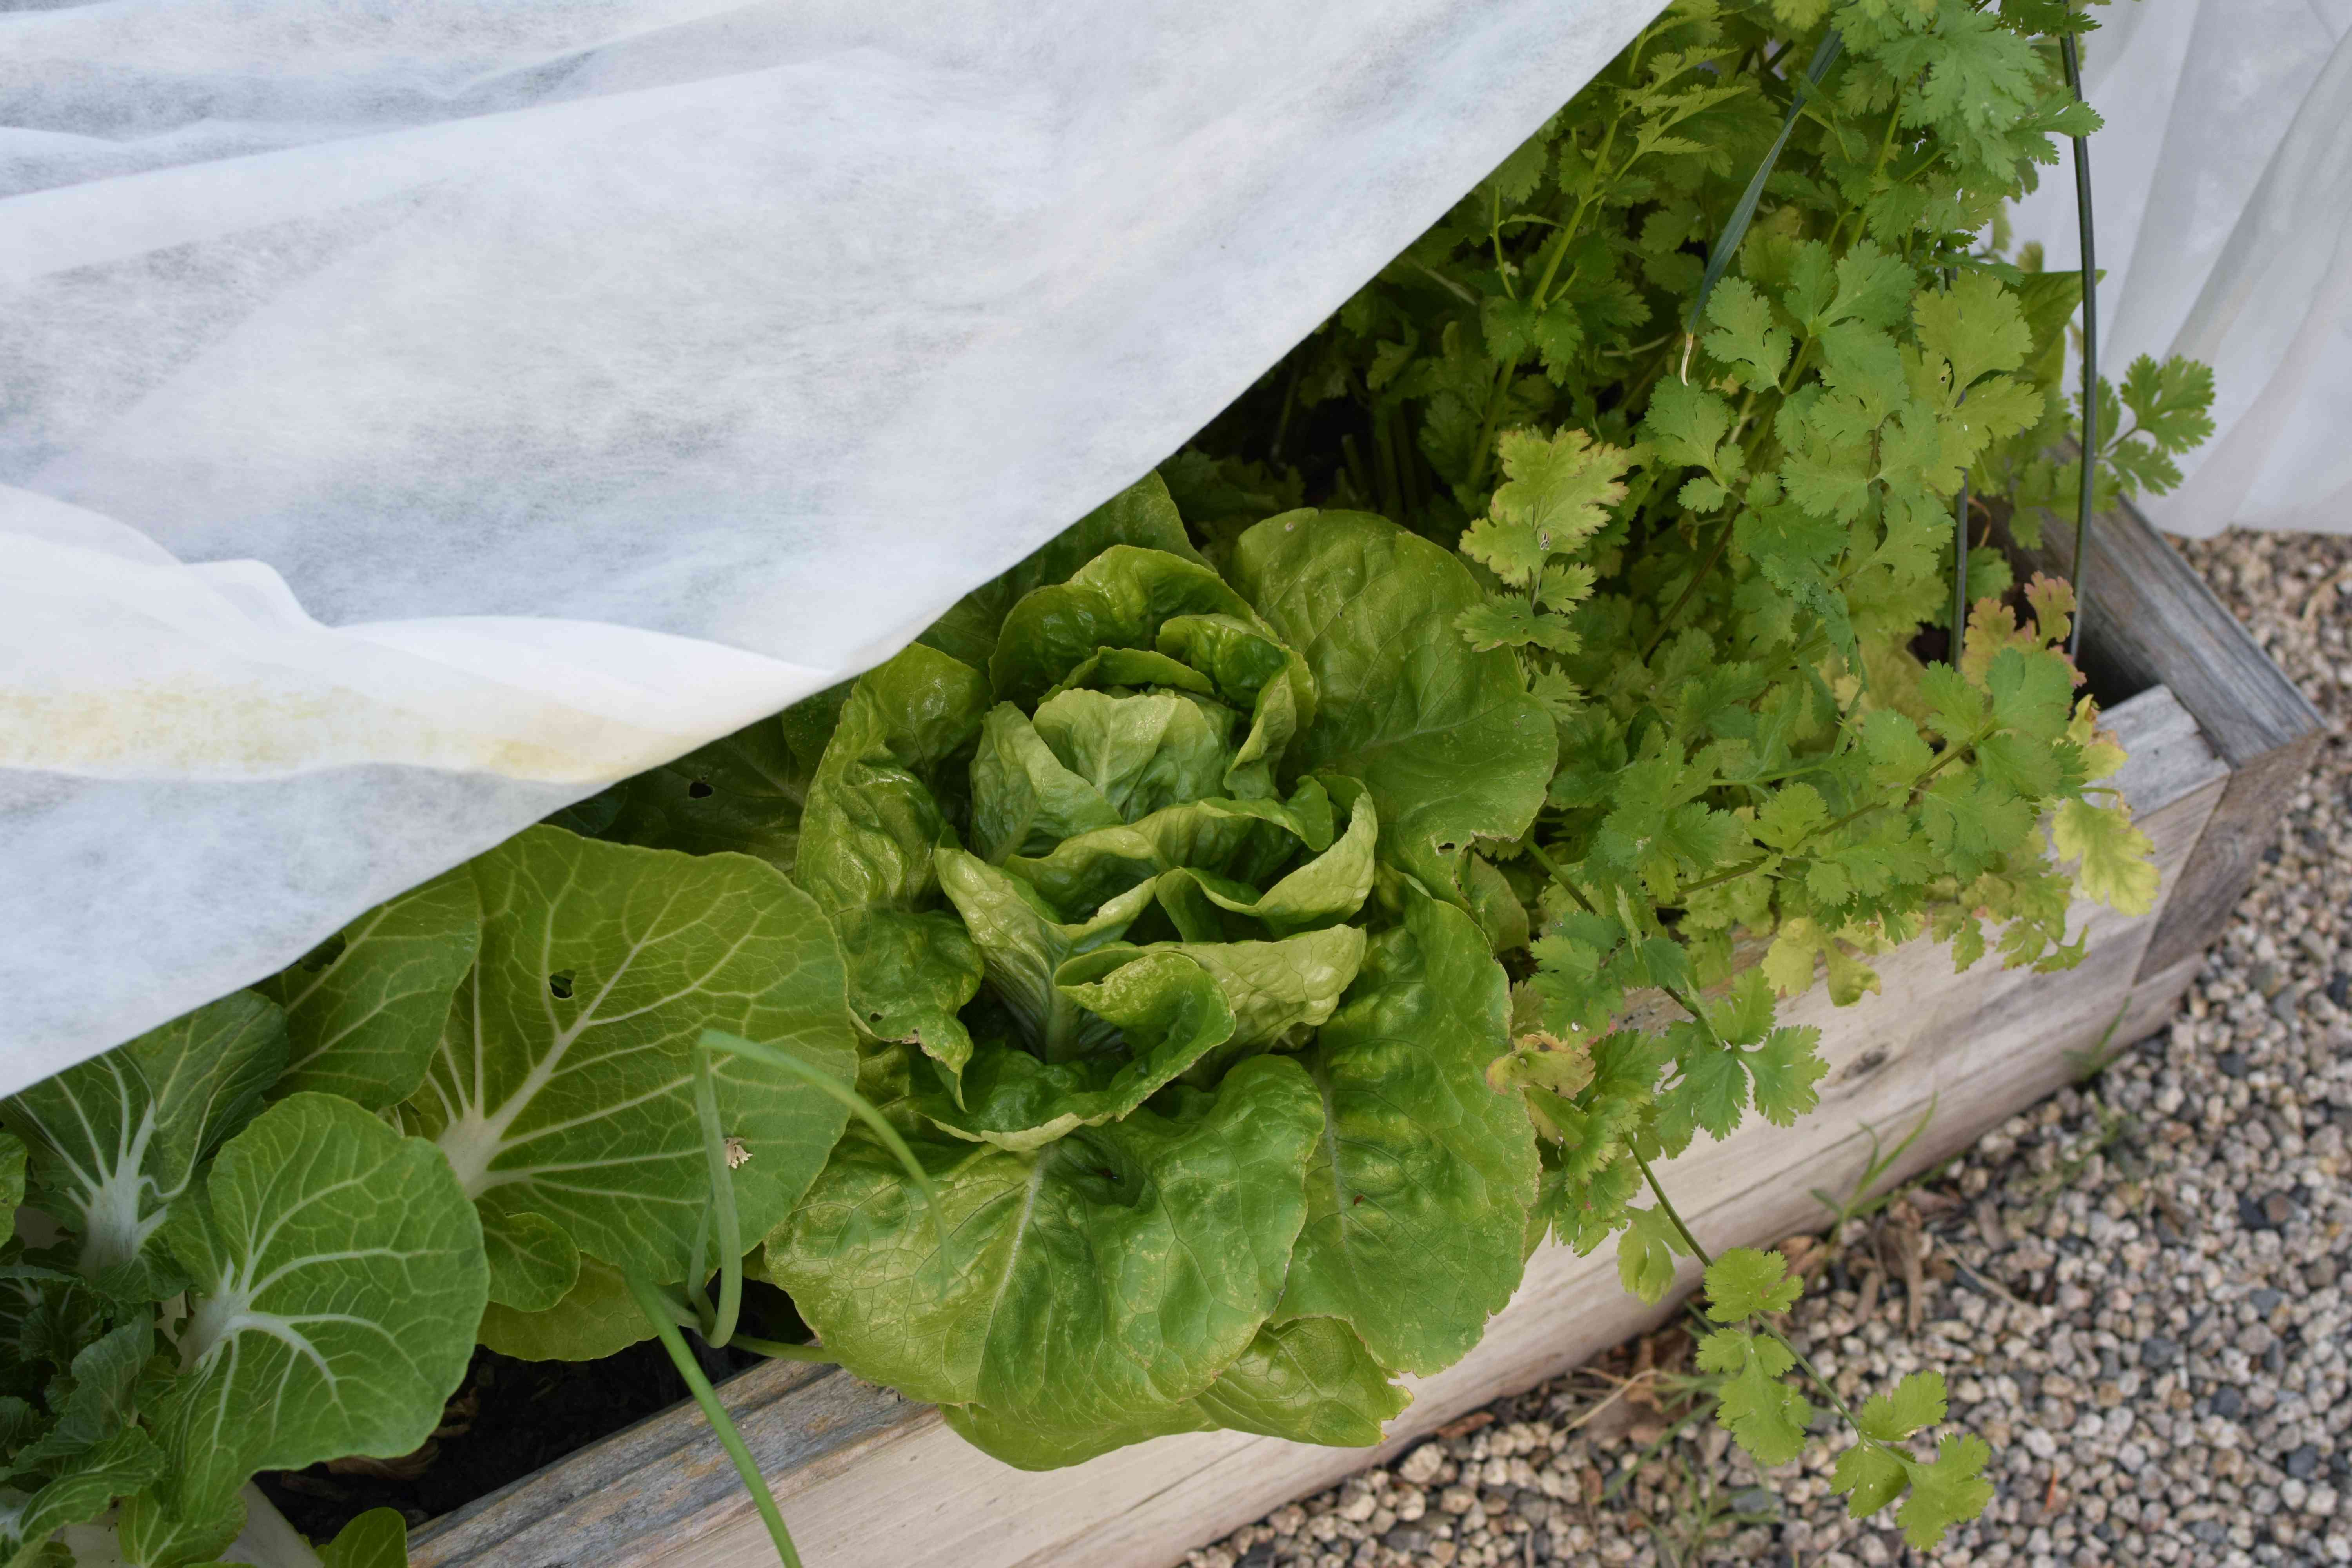 Lettuce head with other herbs and greens growing in garden box under shade